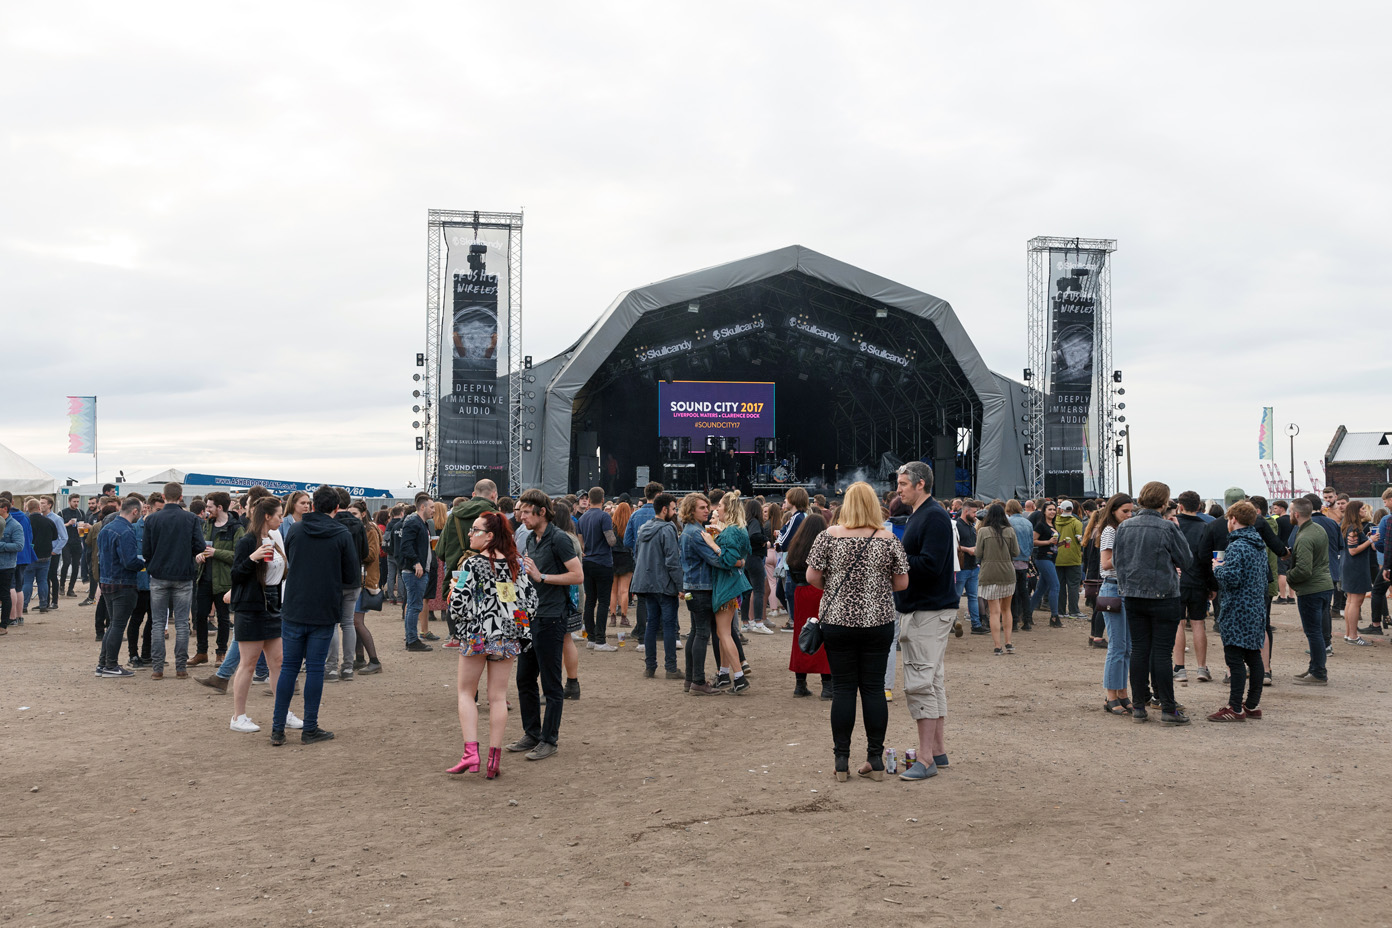 Music fans await the set by White Lies at the main stage of Liverpool Sound City 2017. Photo: Katy Blackwood